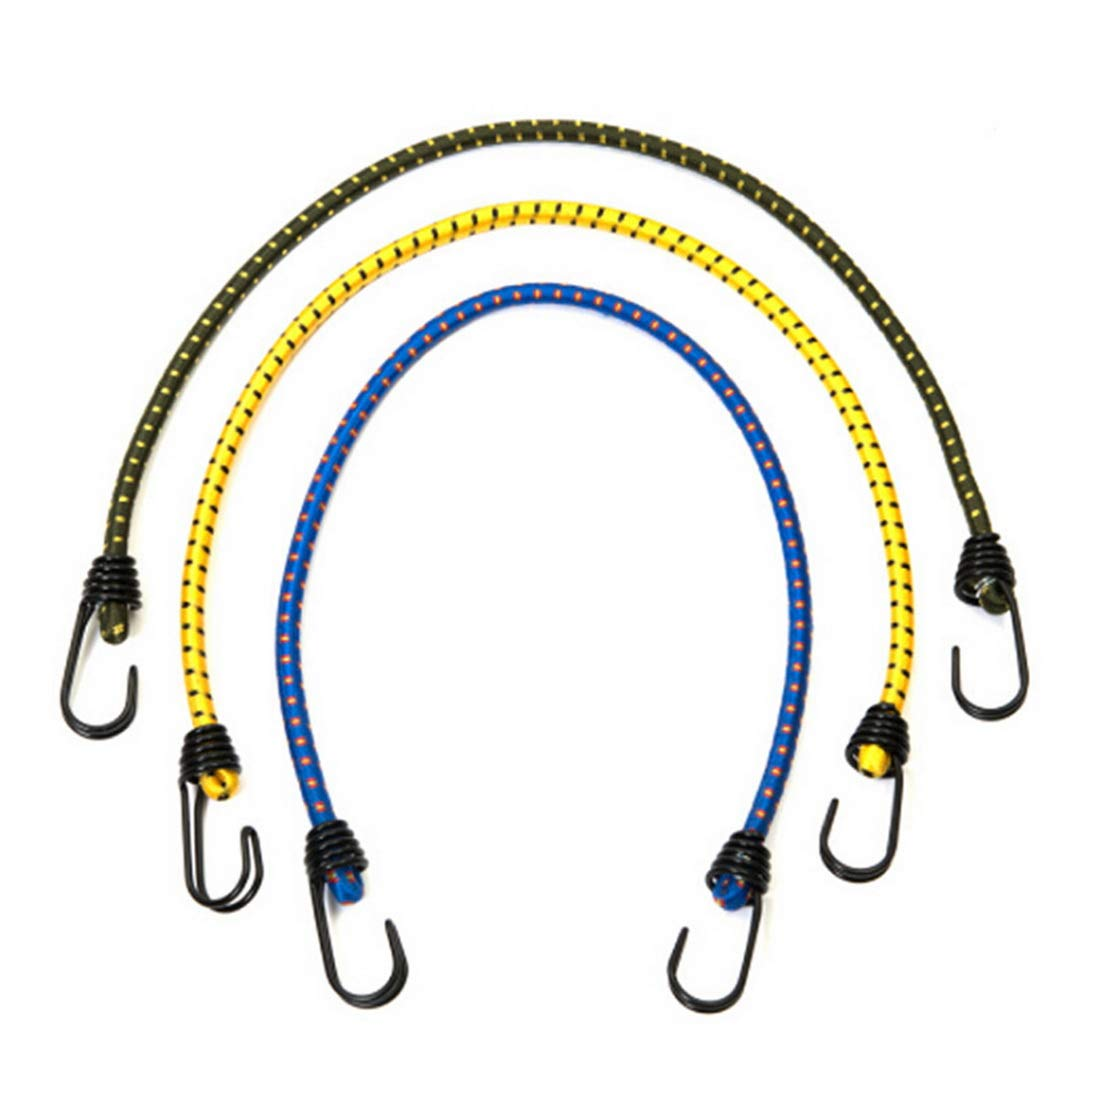 Bungee Cords With Hooks Assortment 3 Pcs Length 23.62 Inch Dia 0.31 Inch Random Color For Cargo Camping Rvs Trunks Luggage Racks - Elastic Shock Cord Tarp Tie Downs by Mega Shop (Image #1)